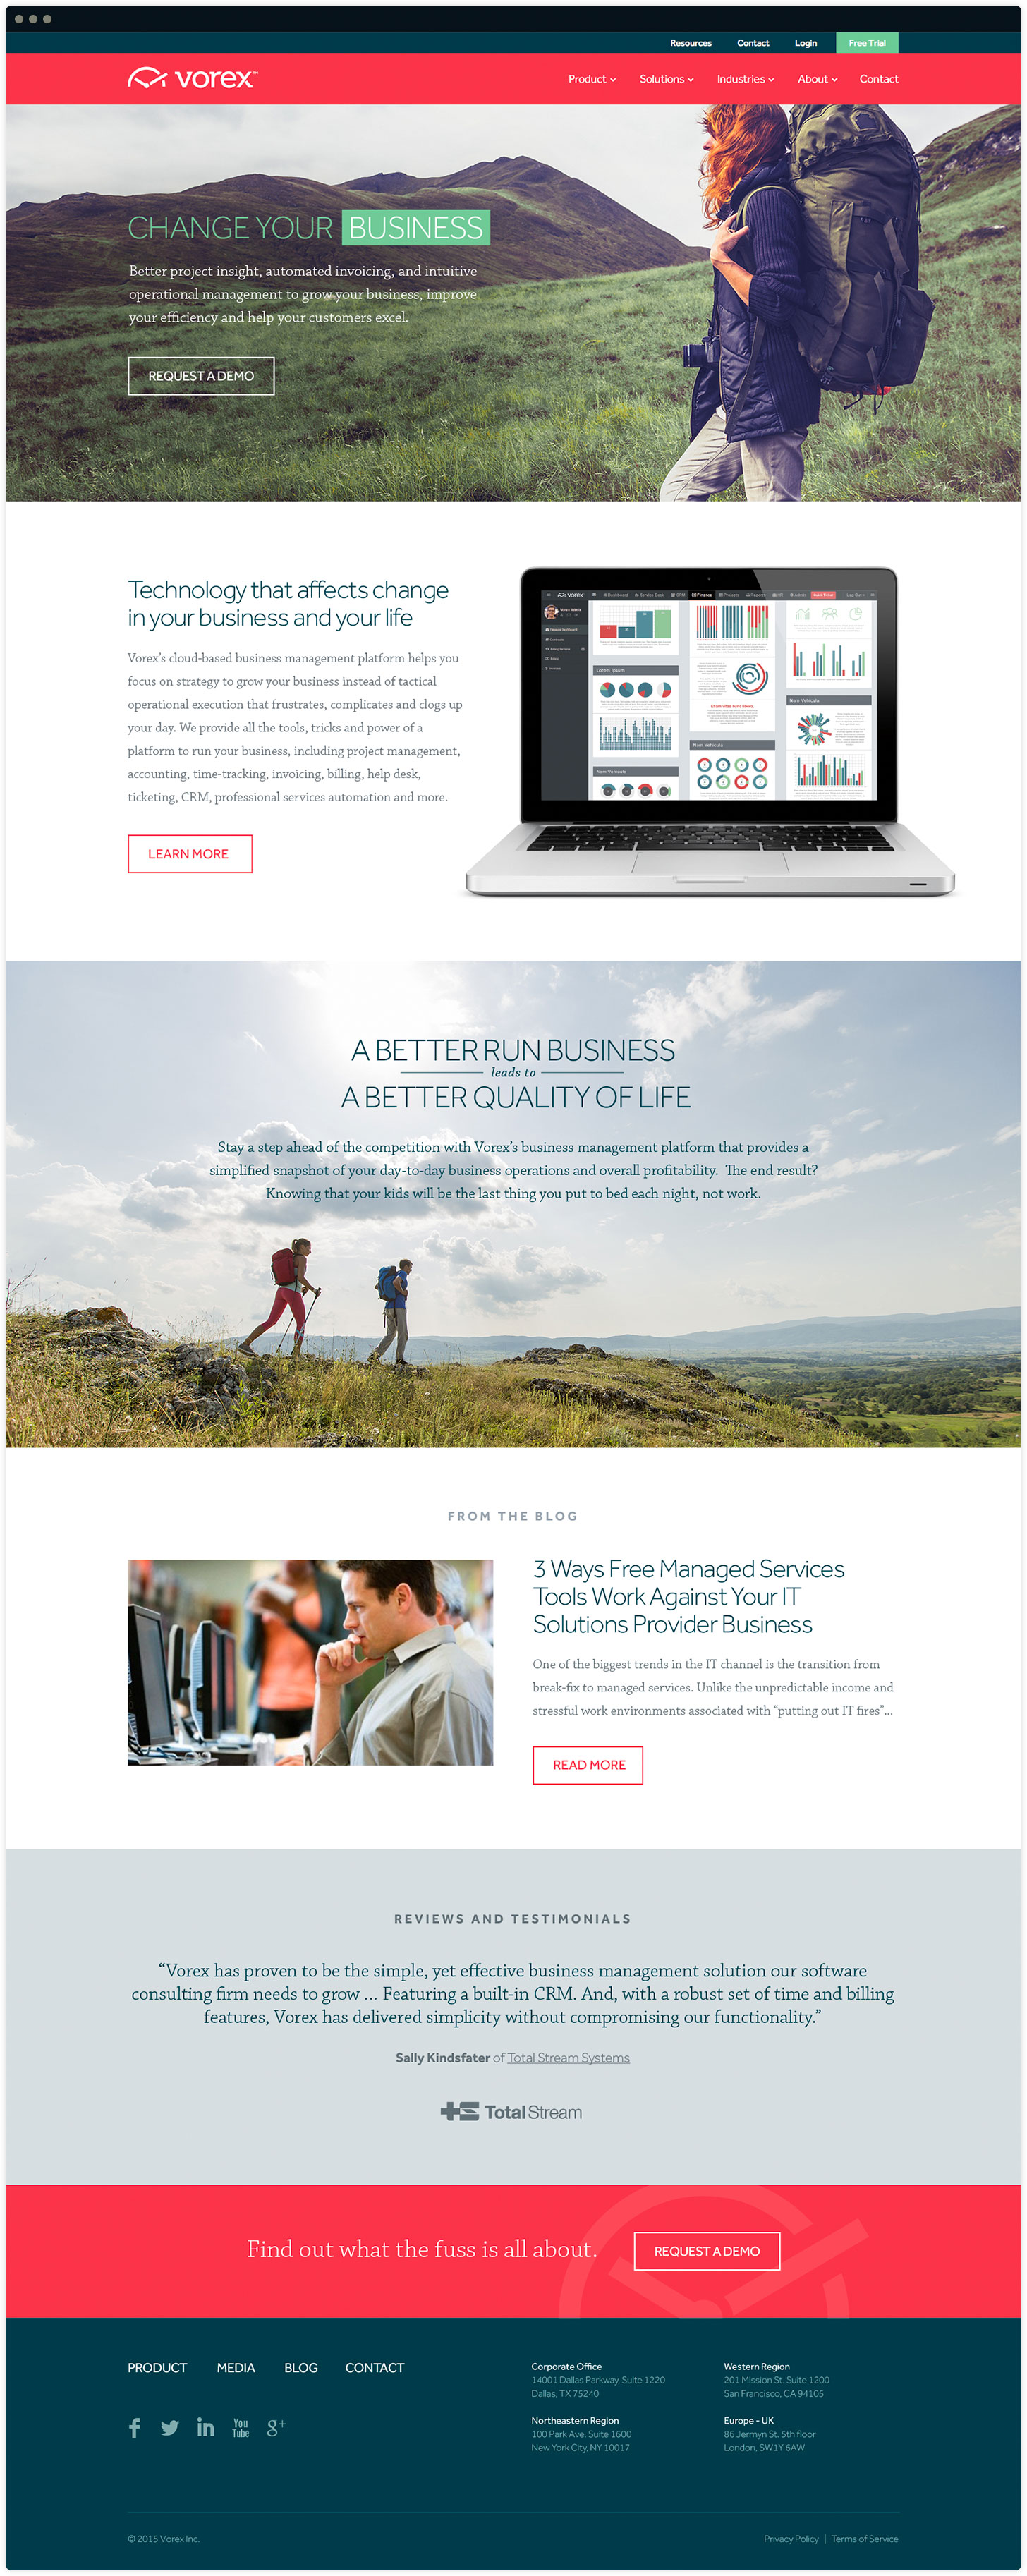 Vorex Website Design by Salted Stone